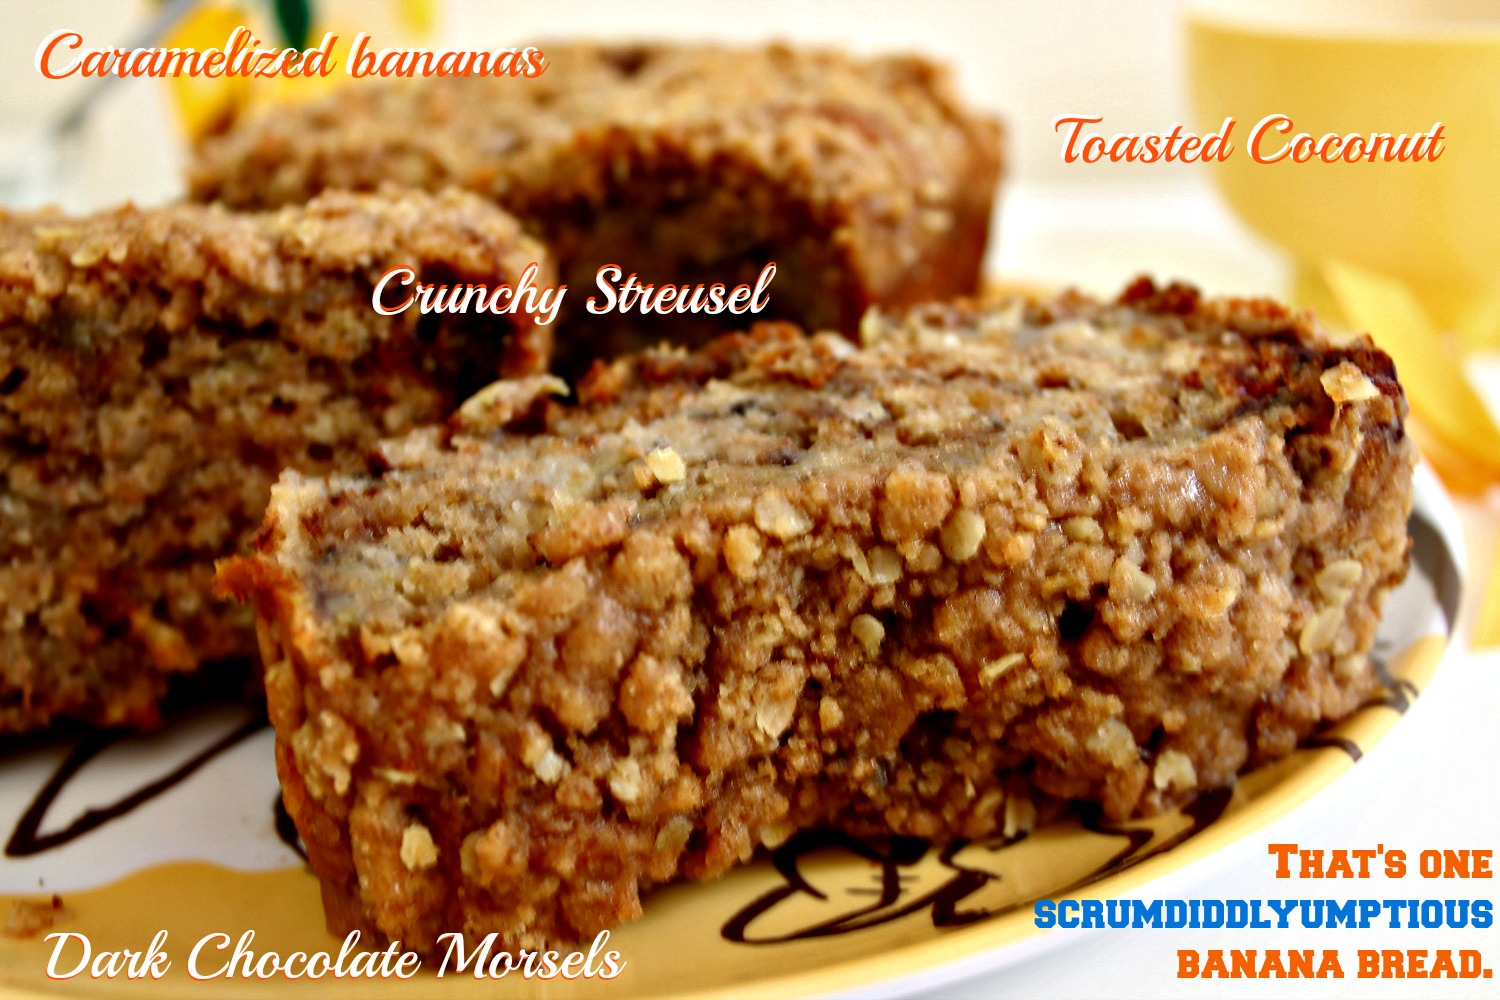 Scrumdiddlyumptious Caramelized Banana and Toasted Coconut Banana Bread 8--013014